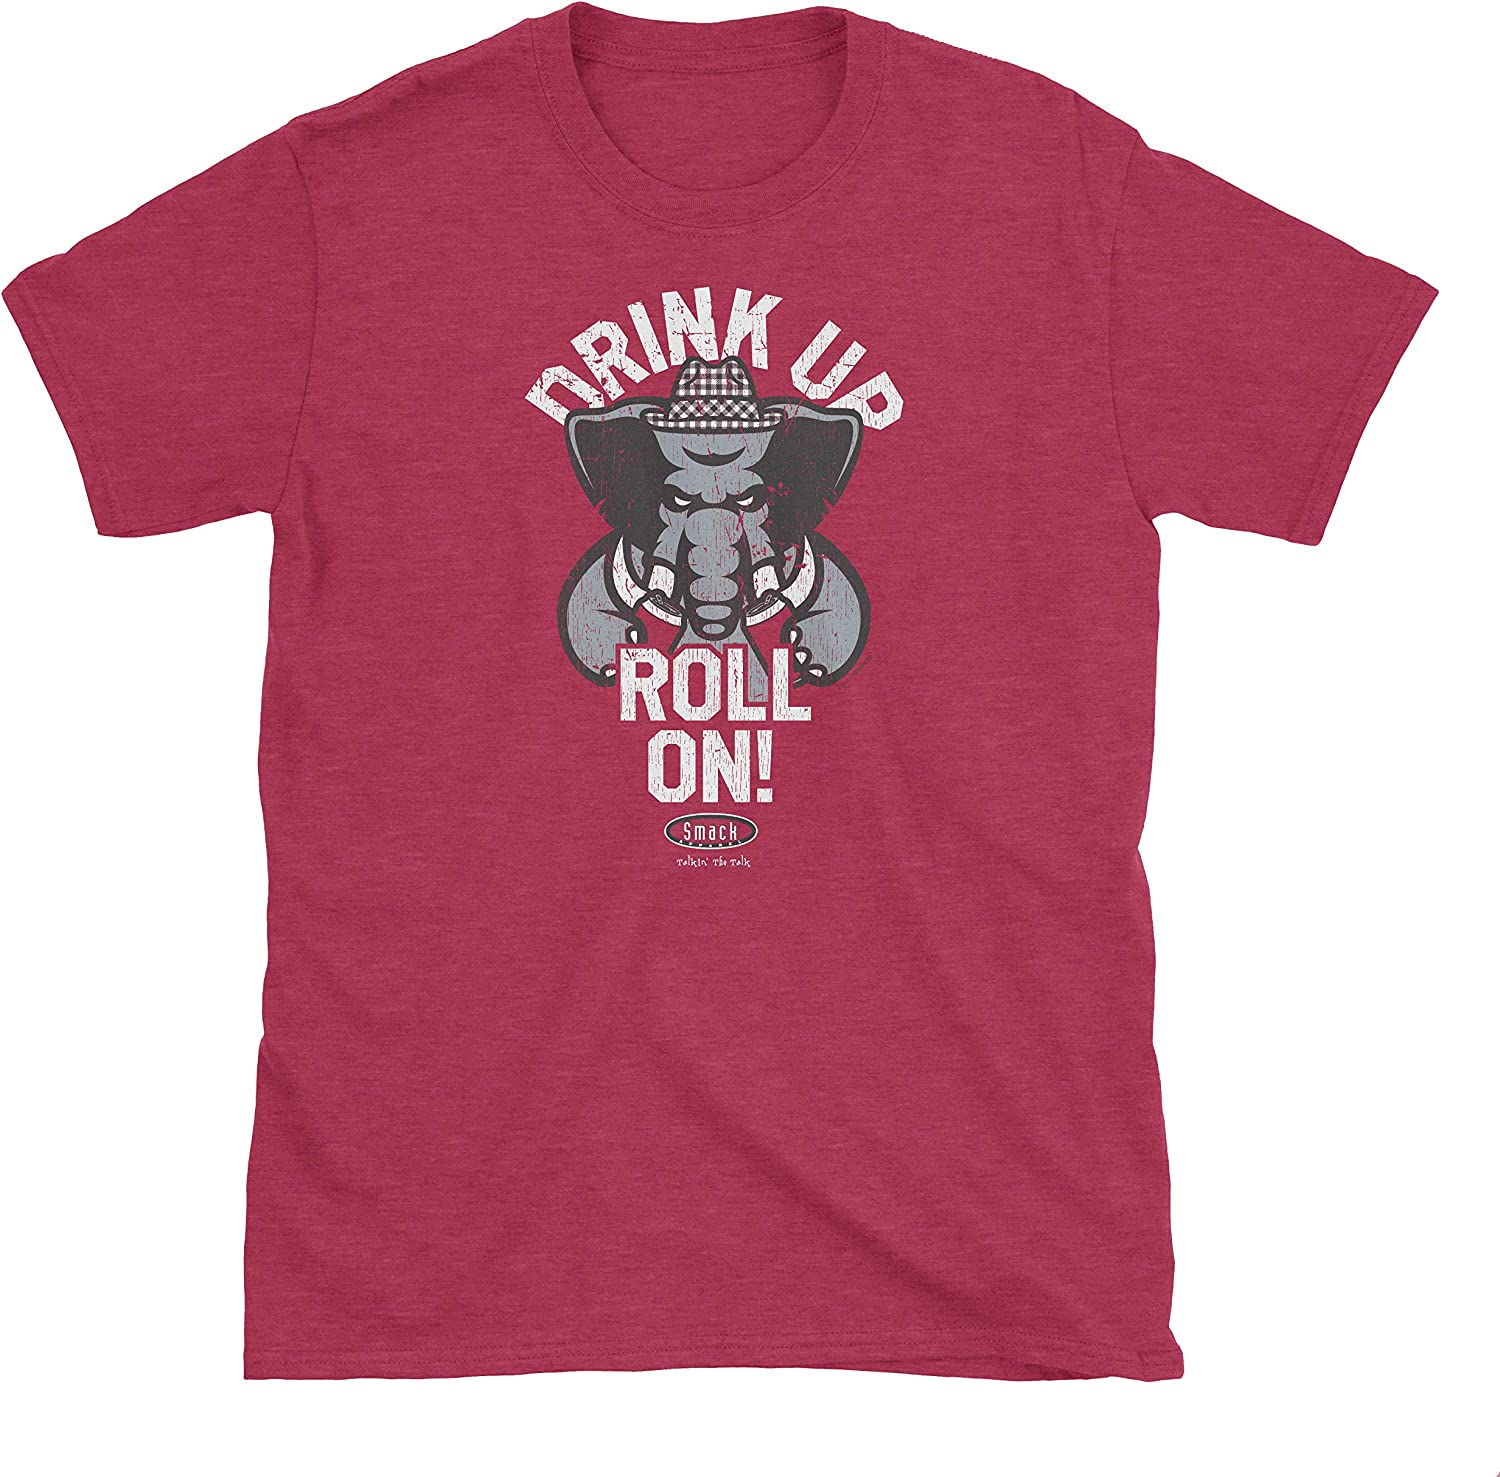 Sm-5X Drink Up Roll On Heather Cardinal T-Shirt Smack Apparel Alabama Football Fans